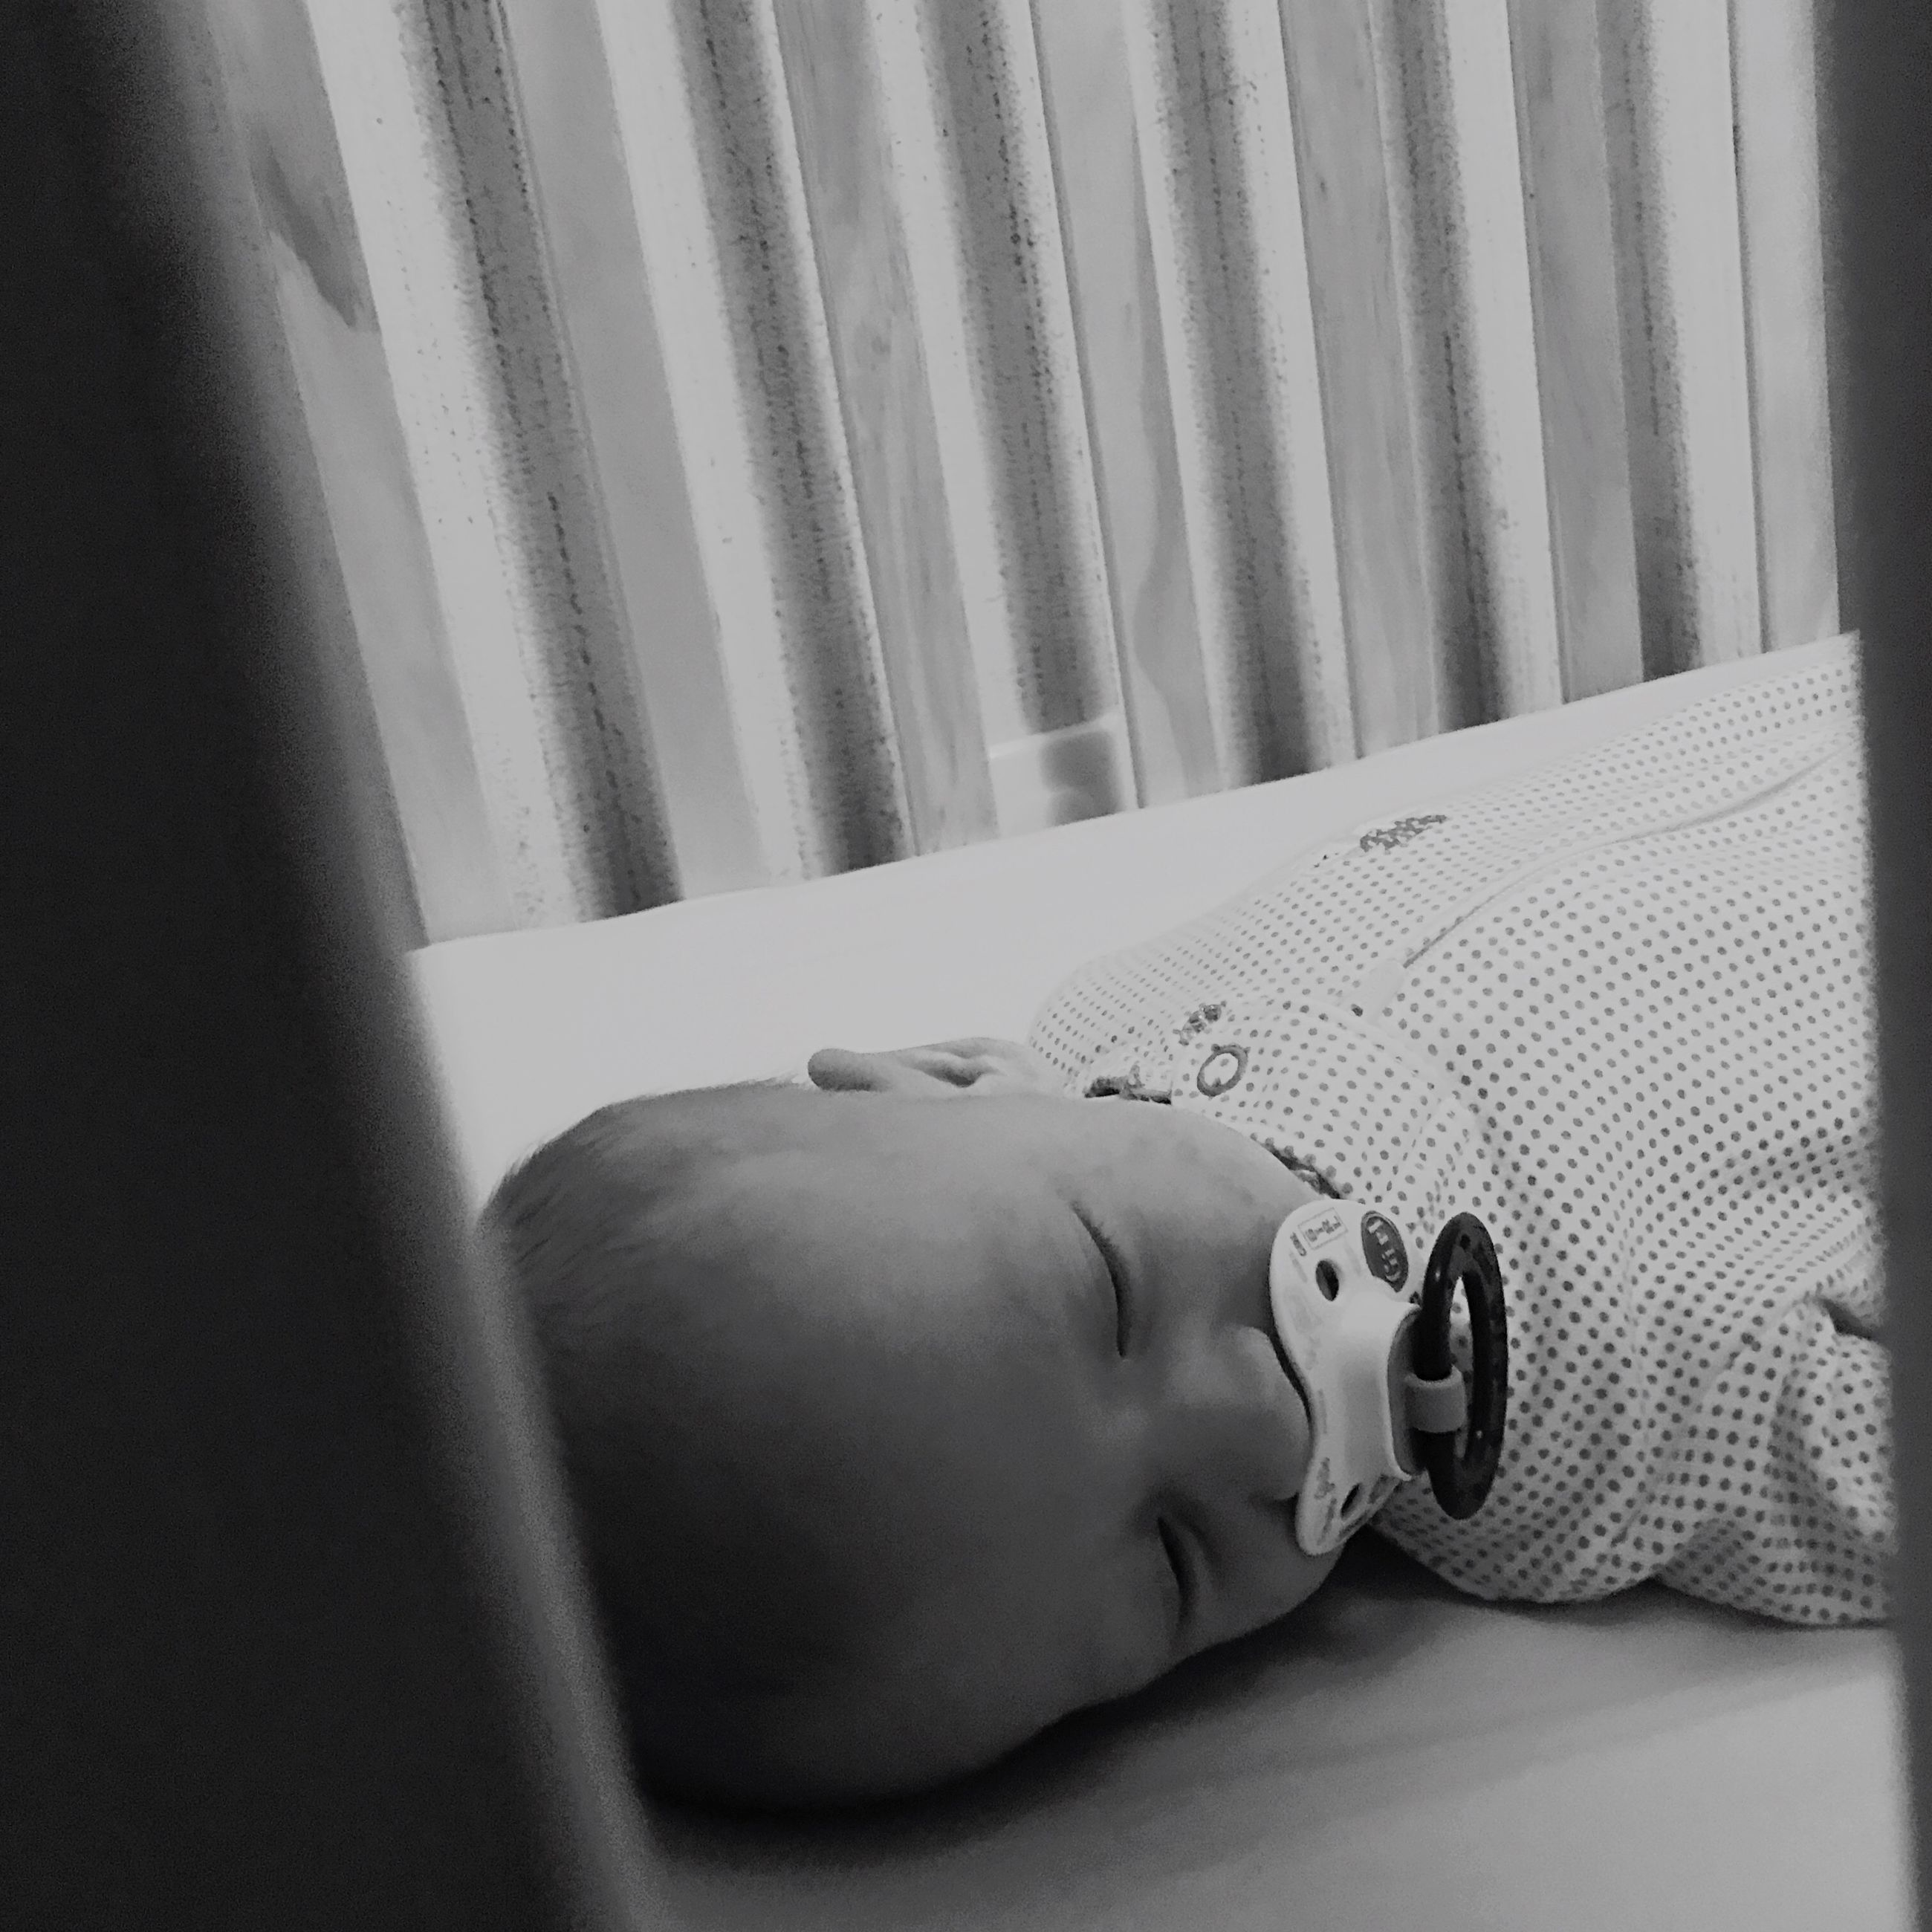 curtain, indoors, baby, babyhood, innocence, cute, home interior, one person, lying down, childhood, real people, new life, newborn, bed, babies only, close-up, day, people